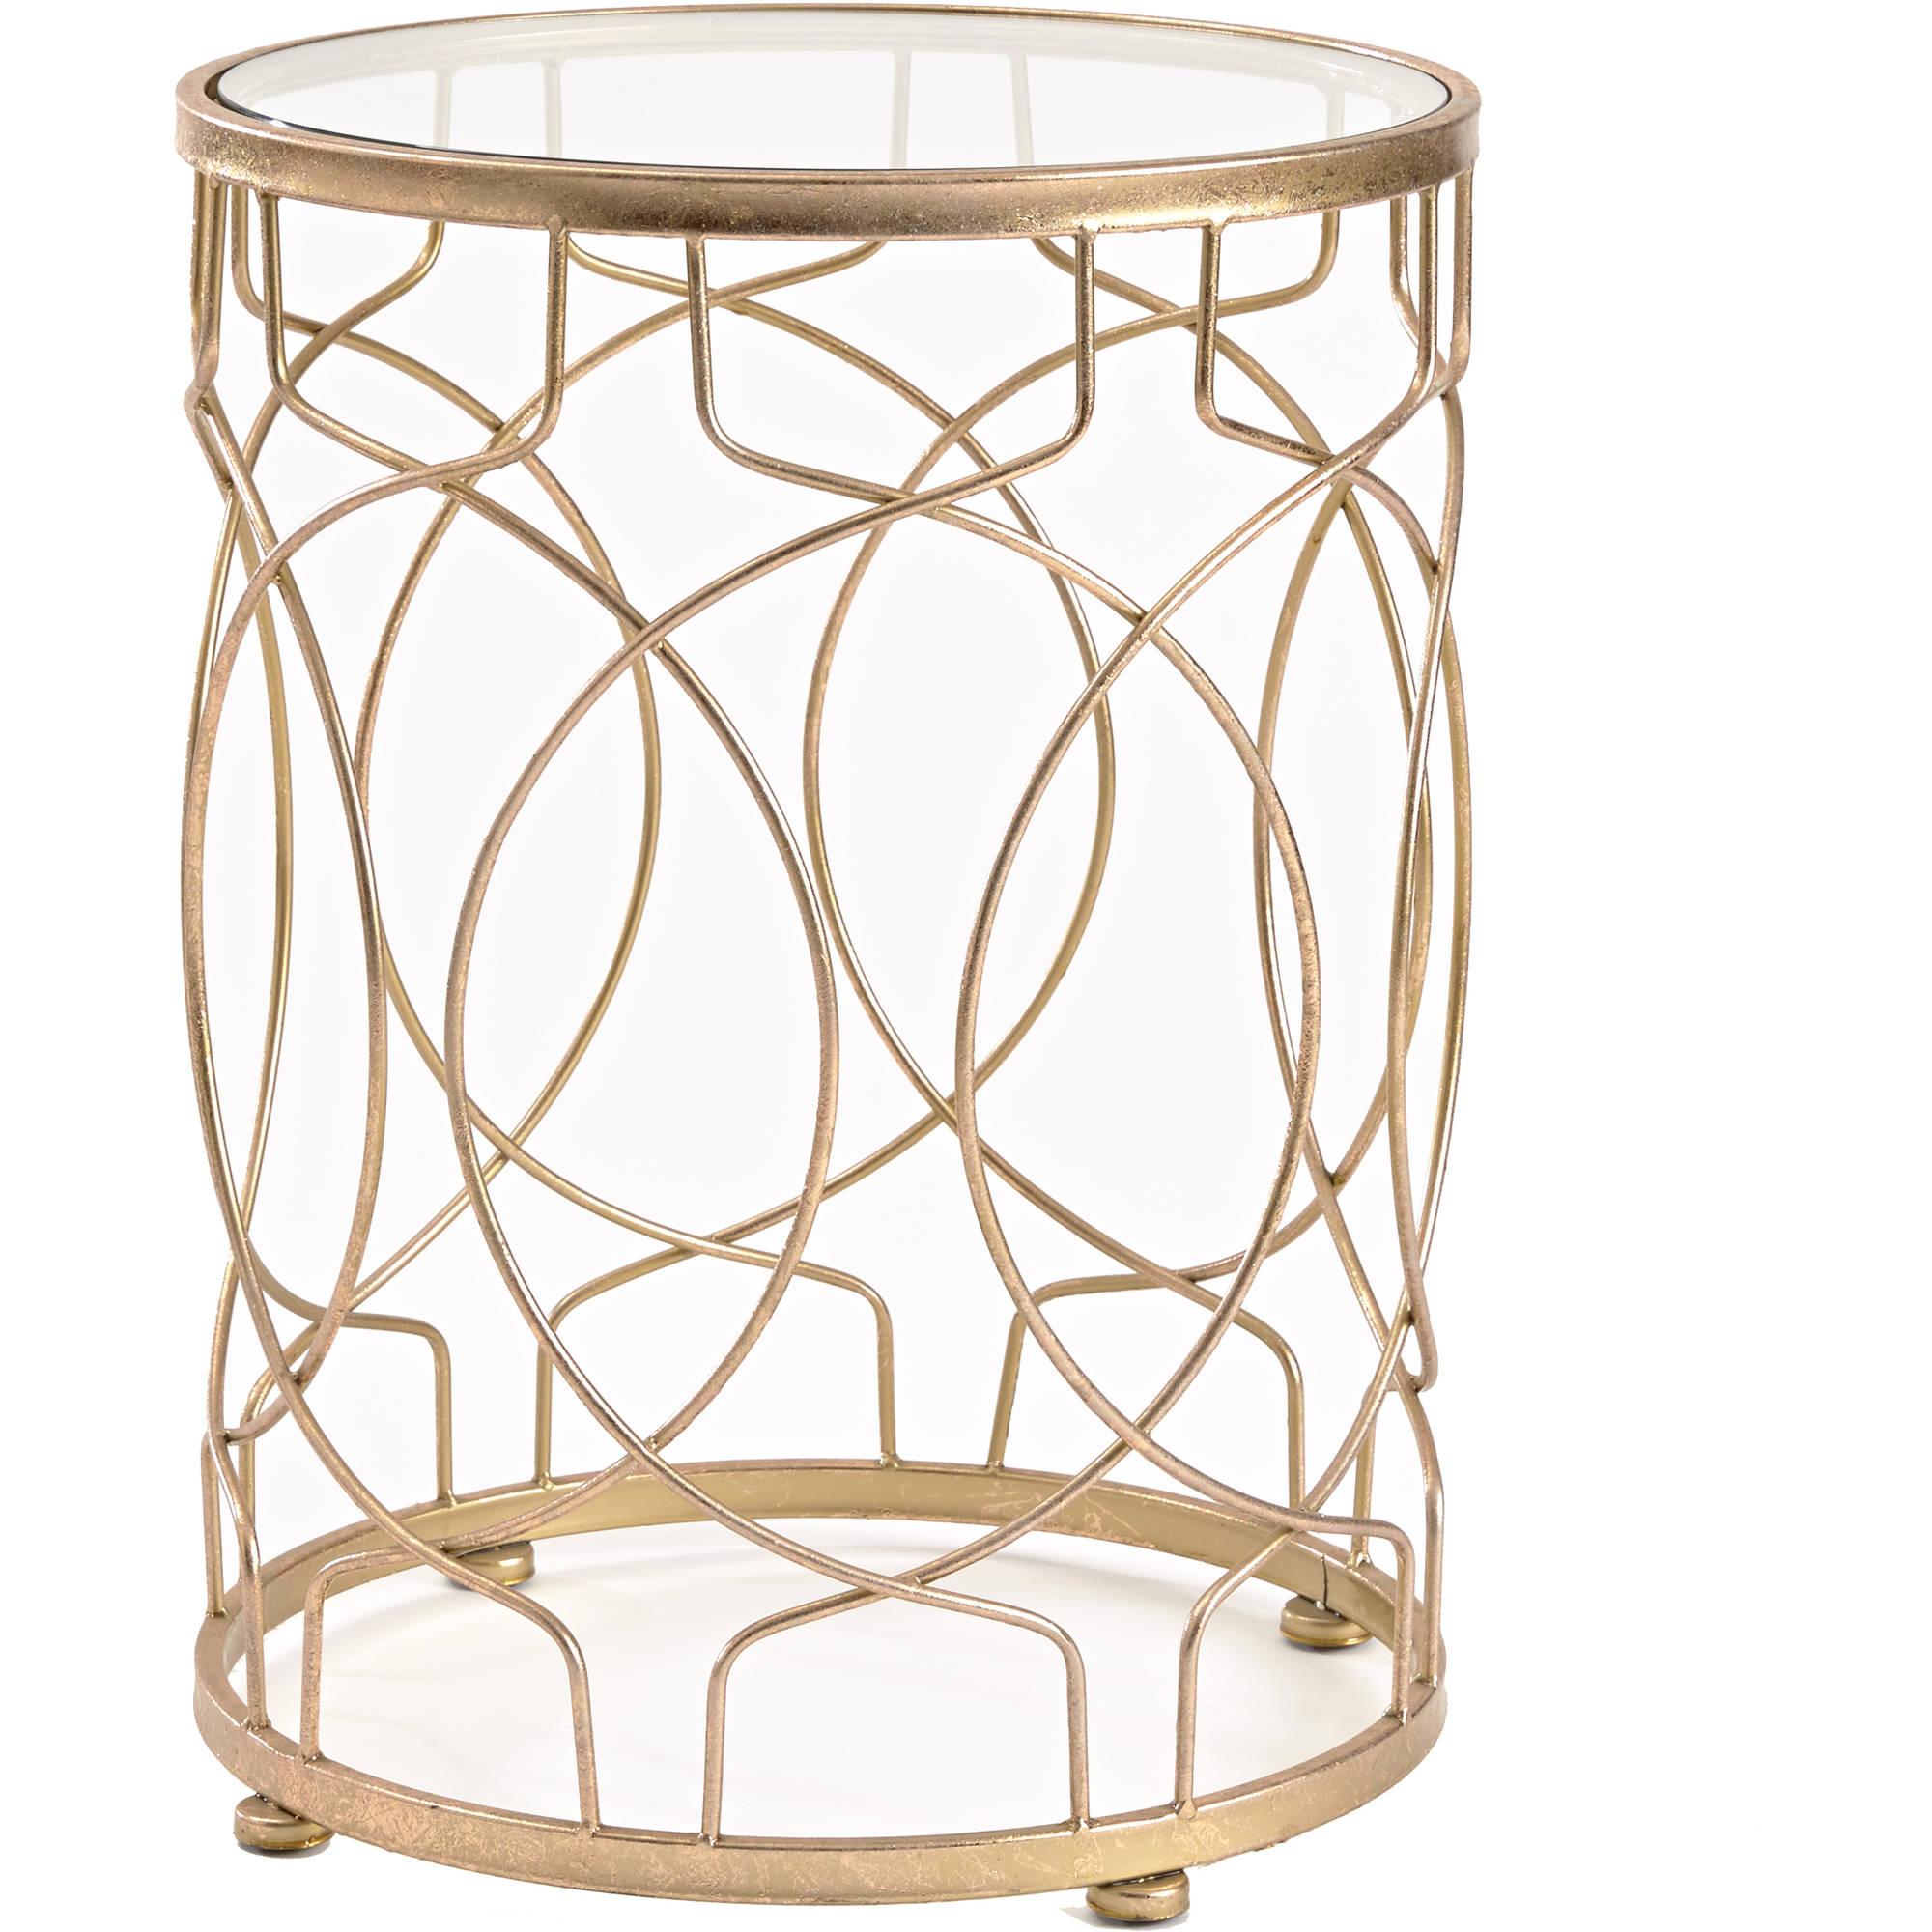 FirsTime & Co. Loop Side Table, Gold